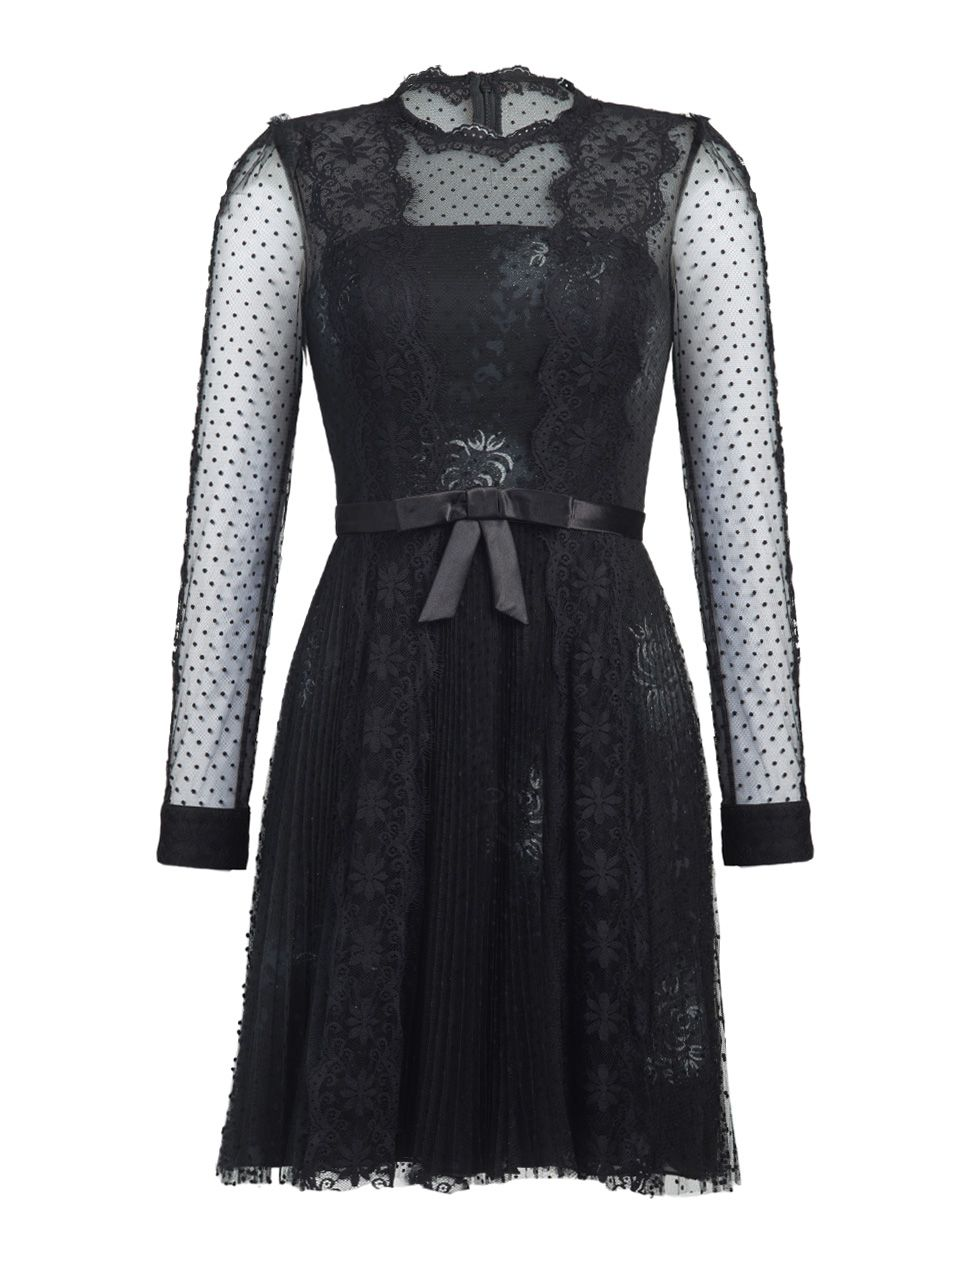 Deasun black short lace dress